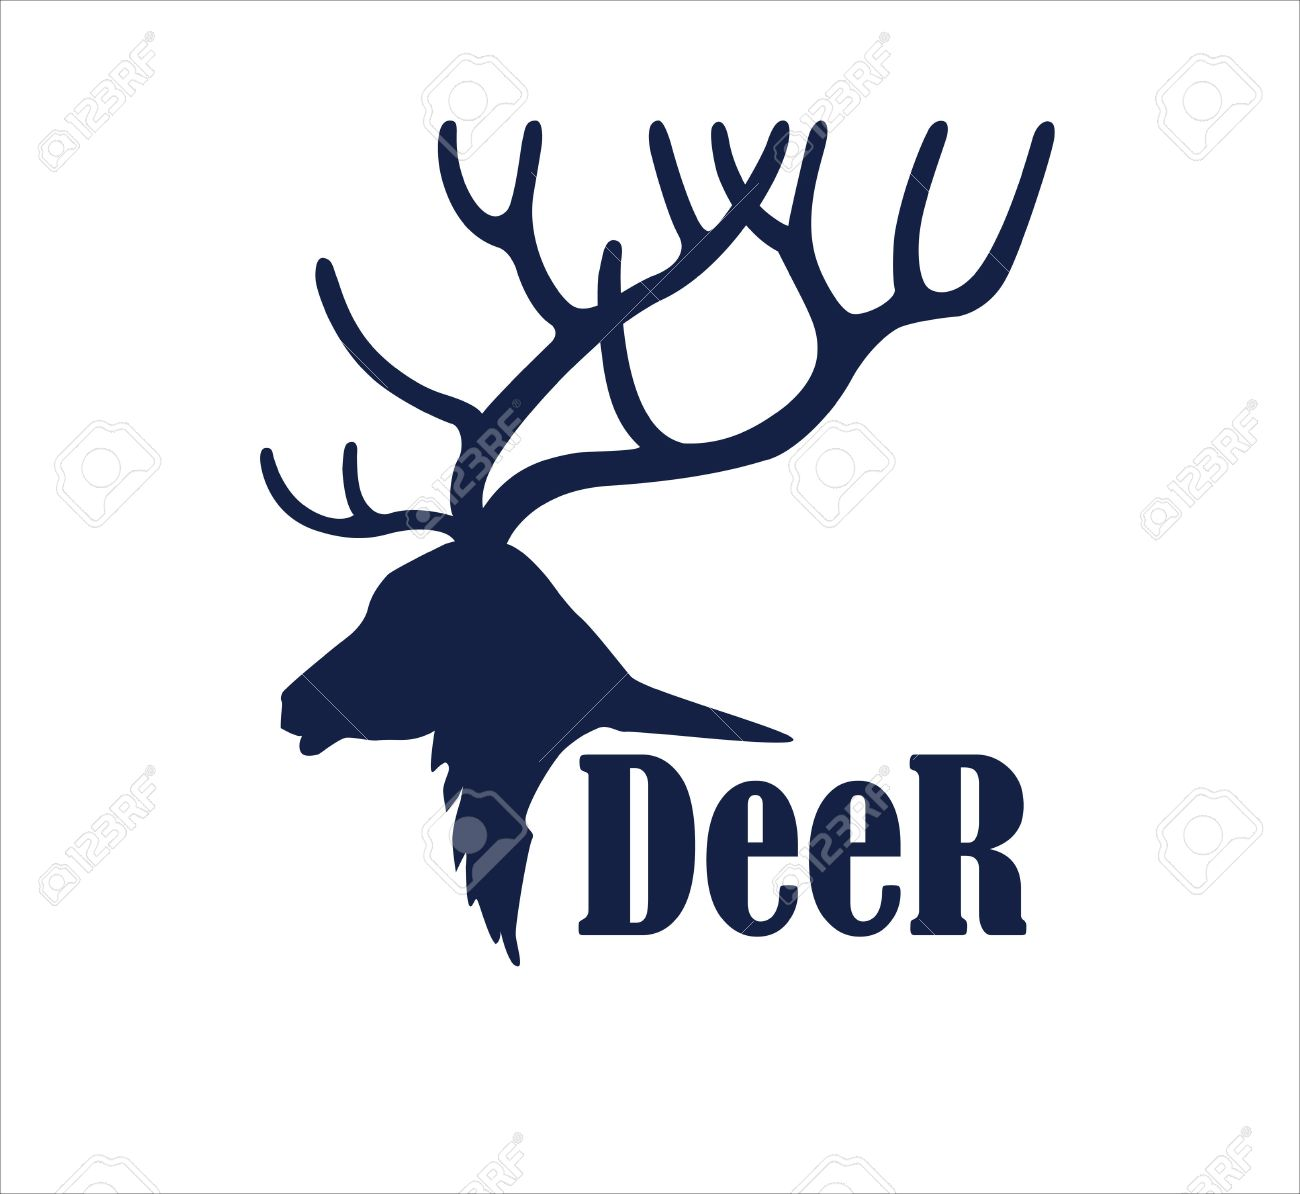 deer logo design template silhouette of deer head in profile rh 123rf com deer head outline logo deer head logo for women's winter jackets